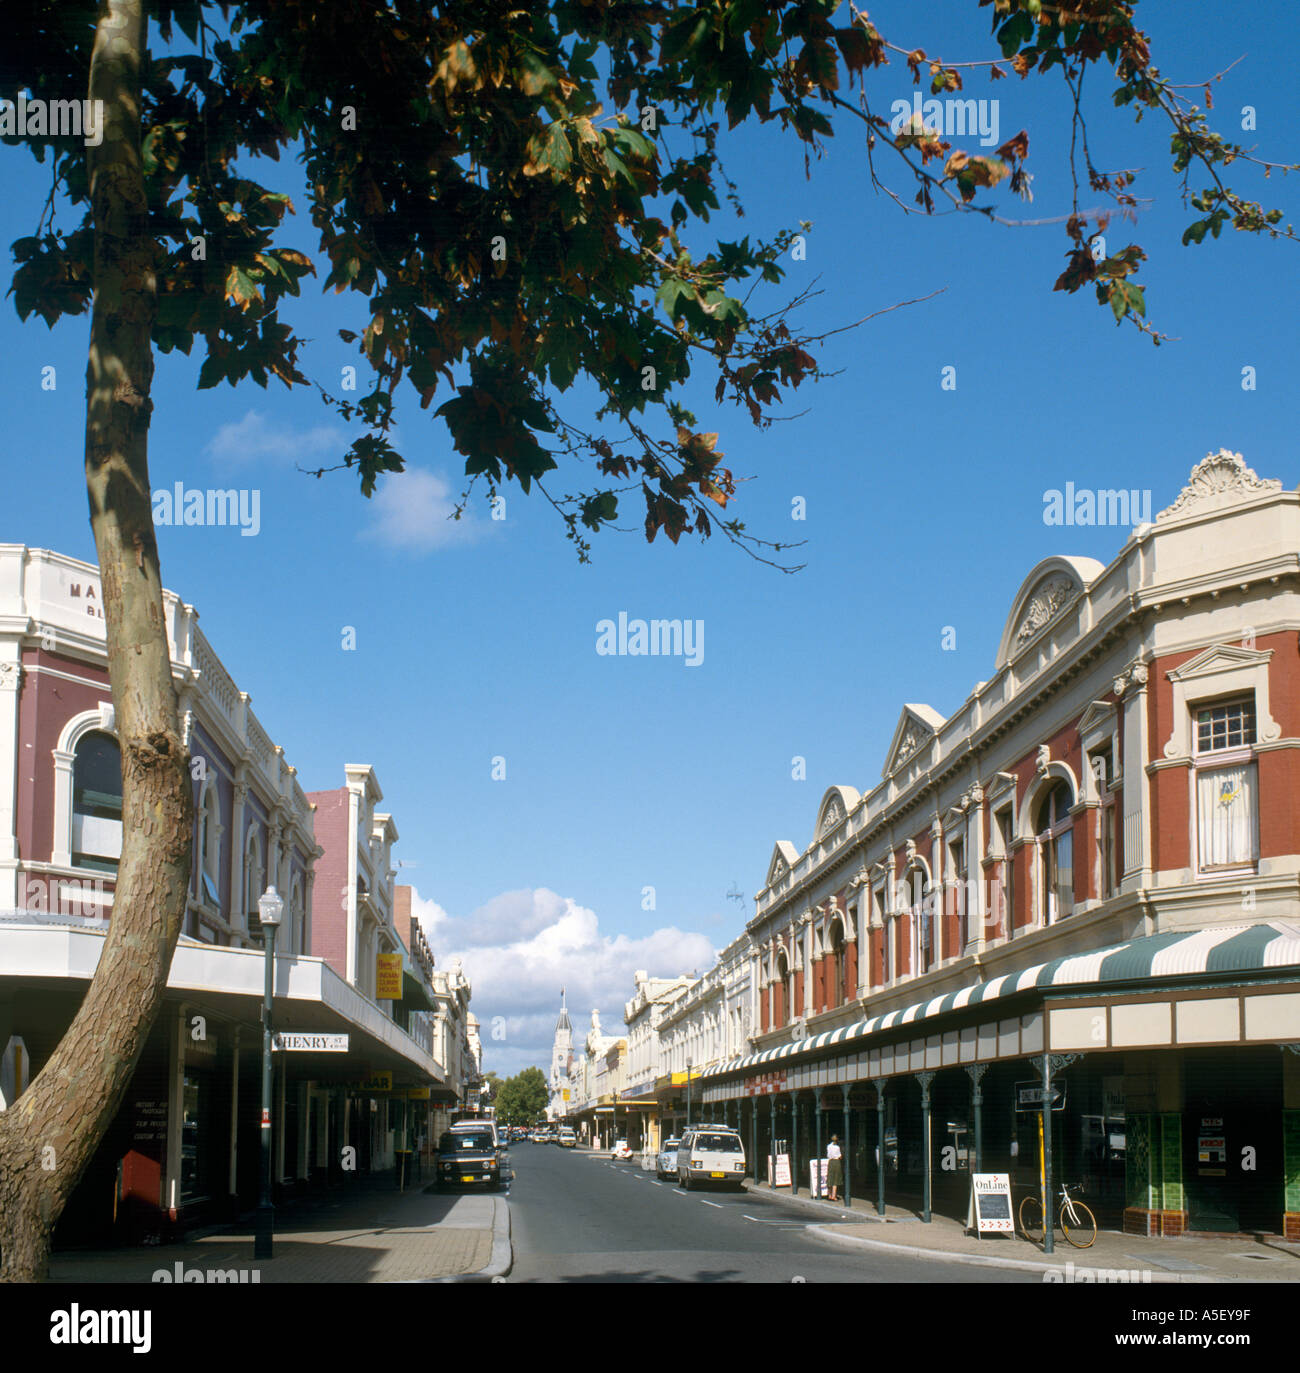 View of High Street from Henry Street looking towards the Town Hall, Fremantle, Western Australia, Australia - Stock Image